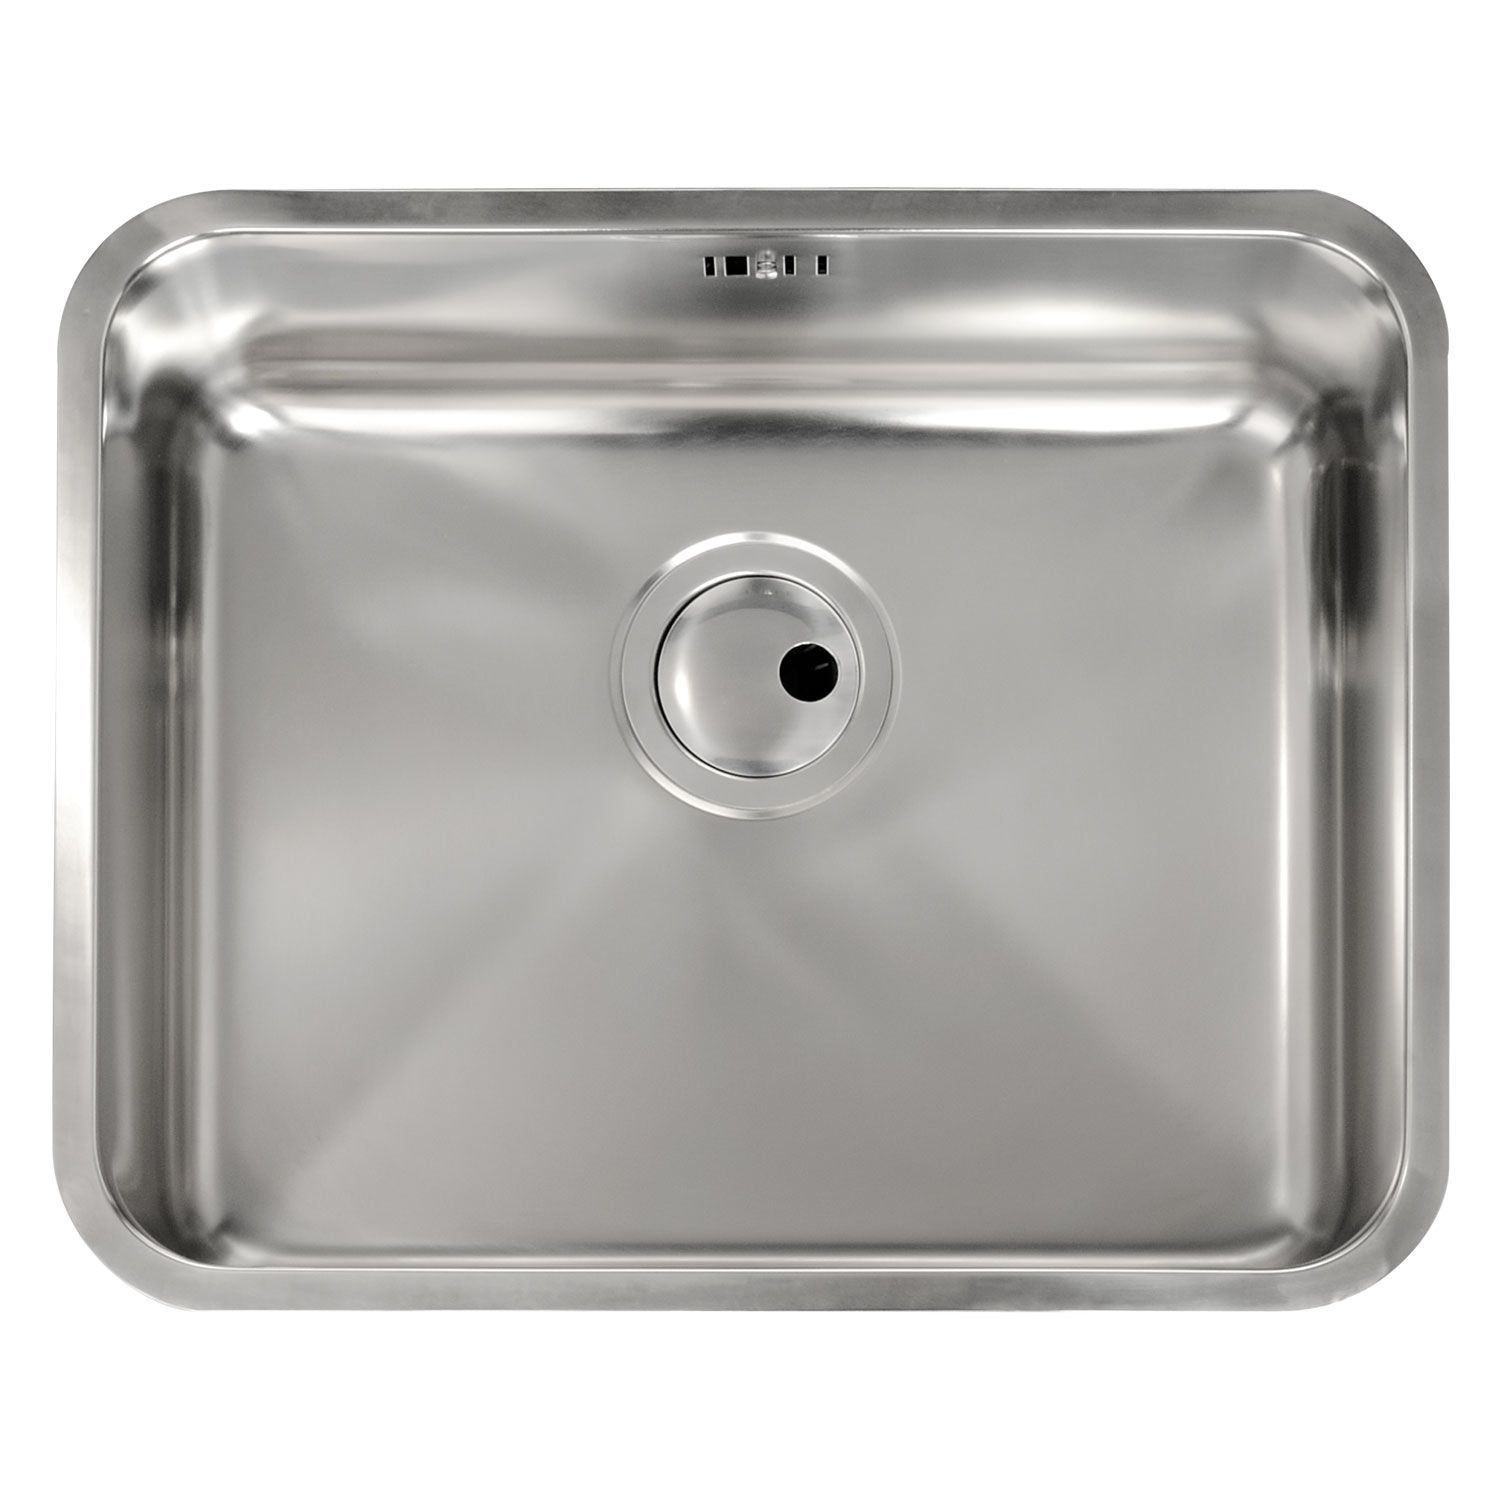 large undermount kitchen sinks abode matrix r50 large 1 0 bowl undermount sink sinks 6822